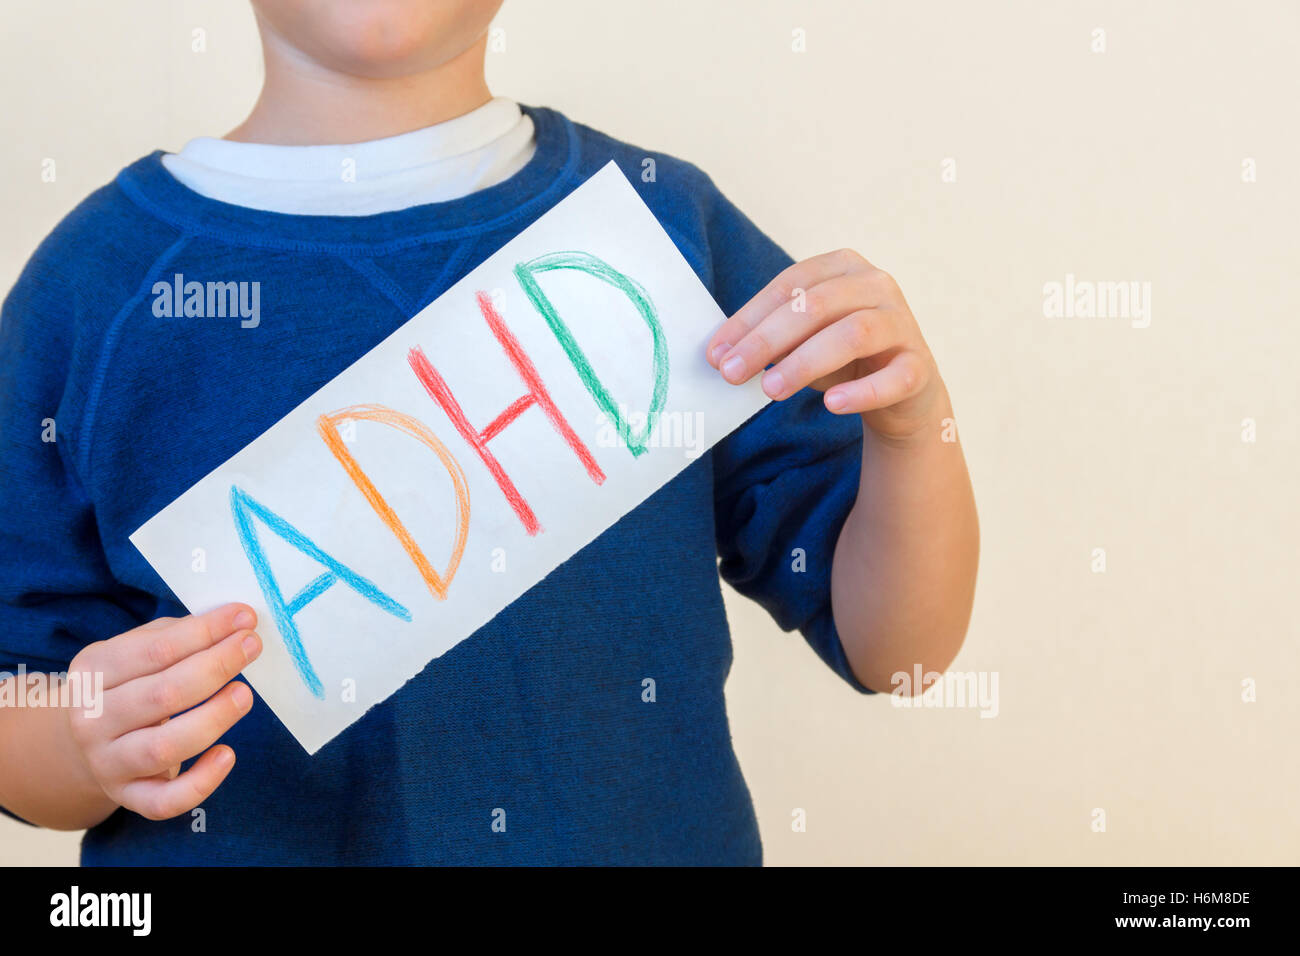 Young boy holds ADHD text written on sheet of paper. ADHD is Attention deficit hyperactivity disorder. - Stock Image